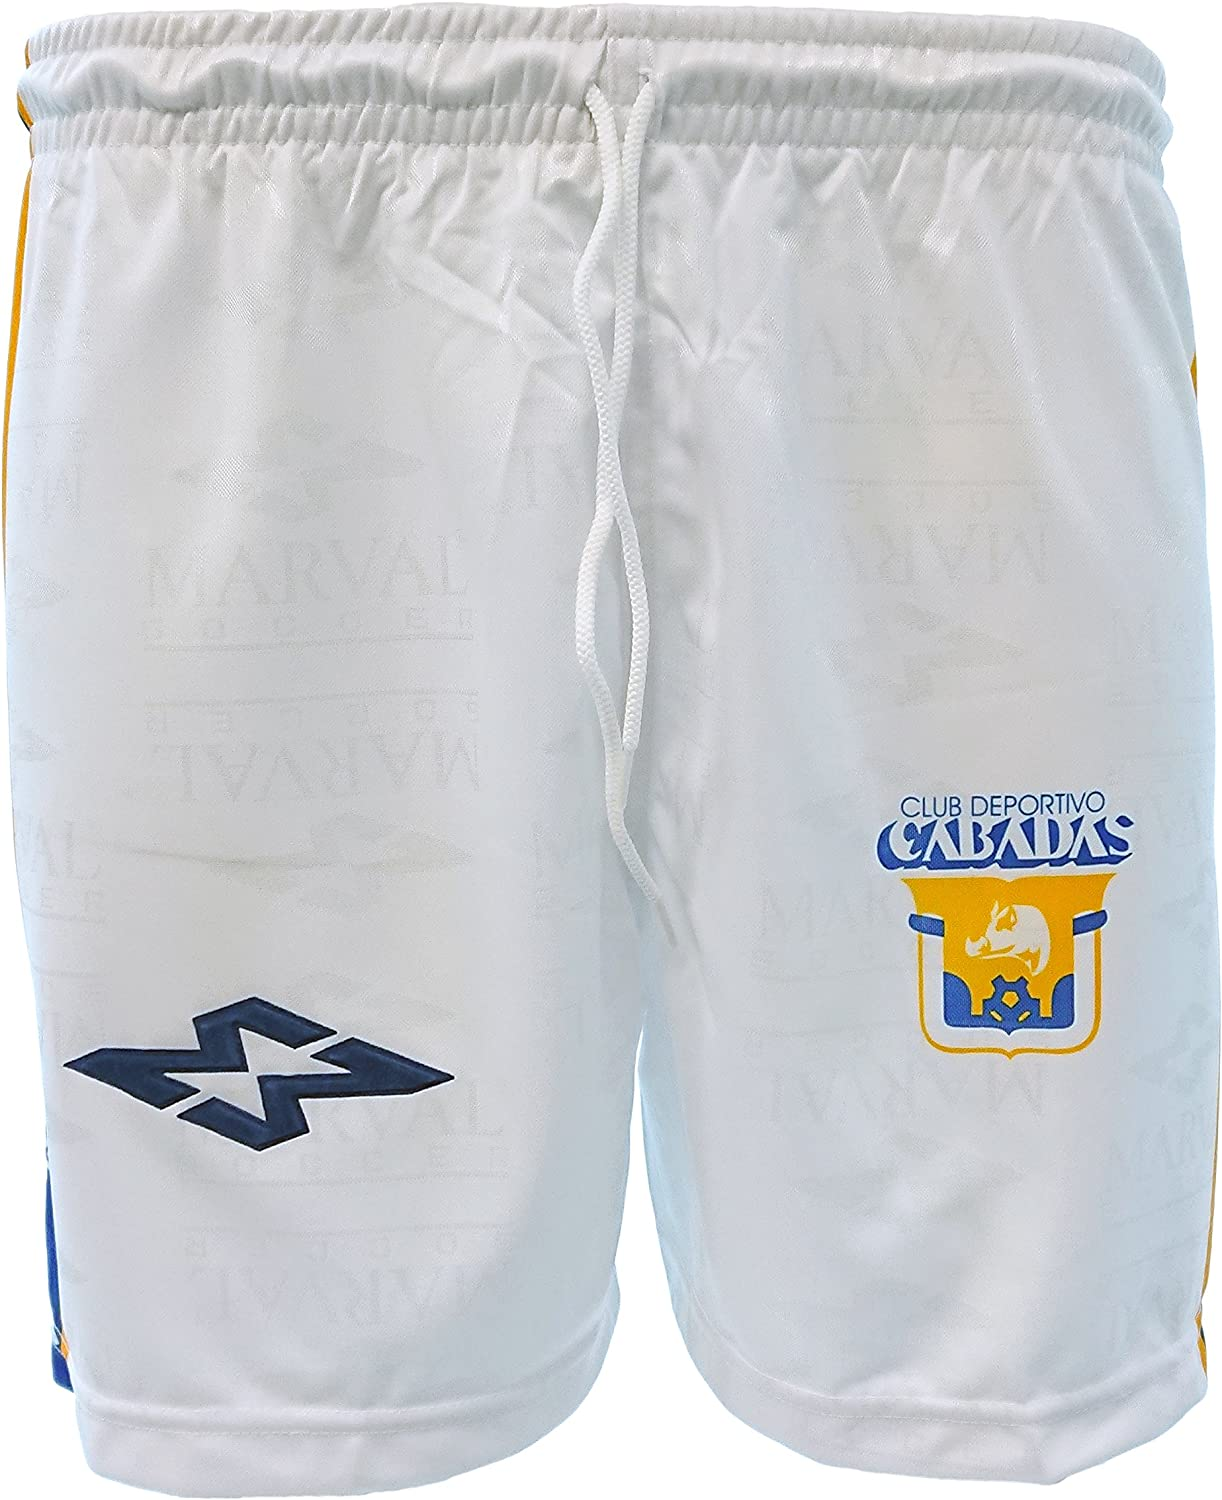 Marval Club Popularity Deportivo Cabadas by Short Classic White Soccer